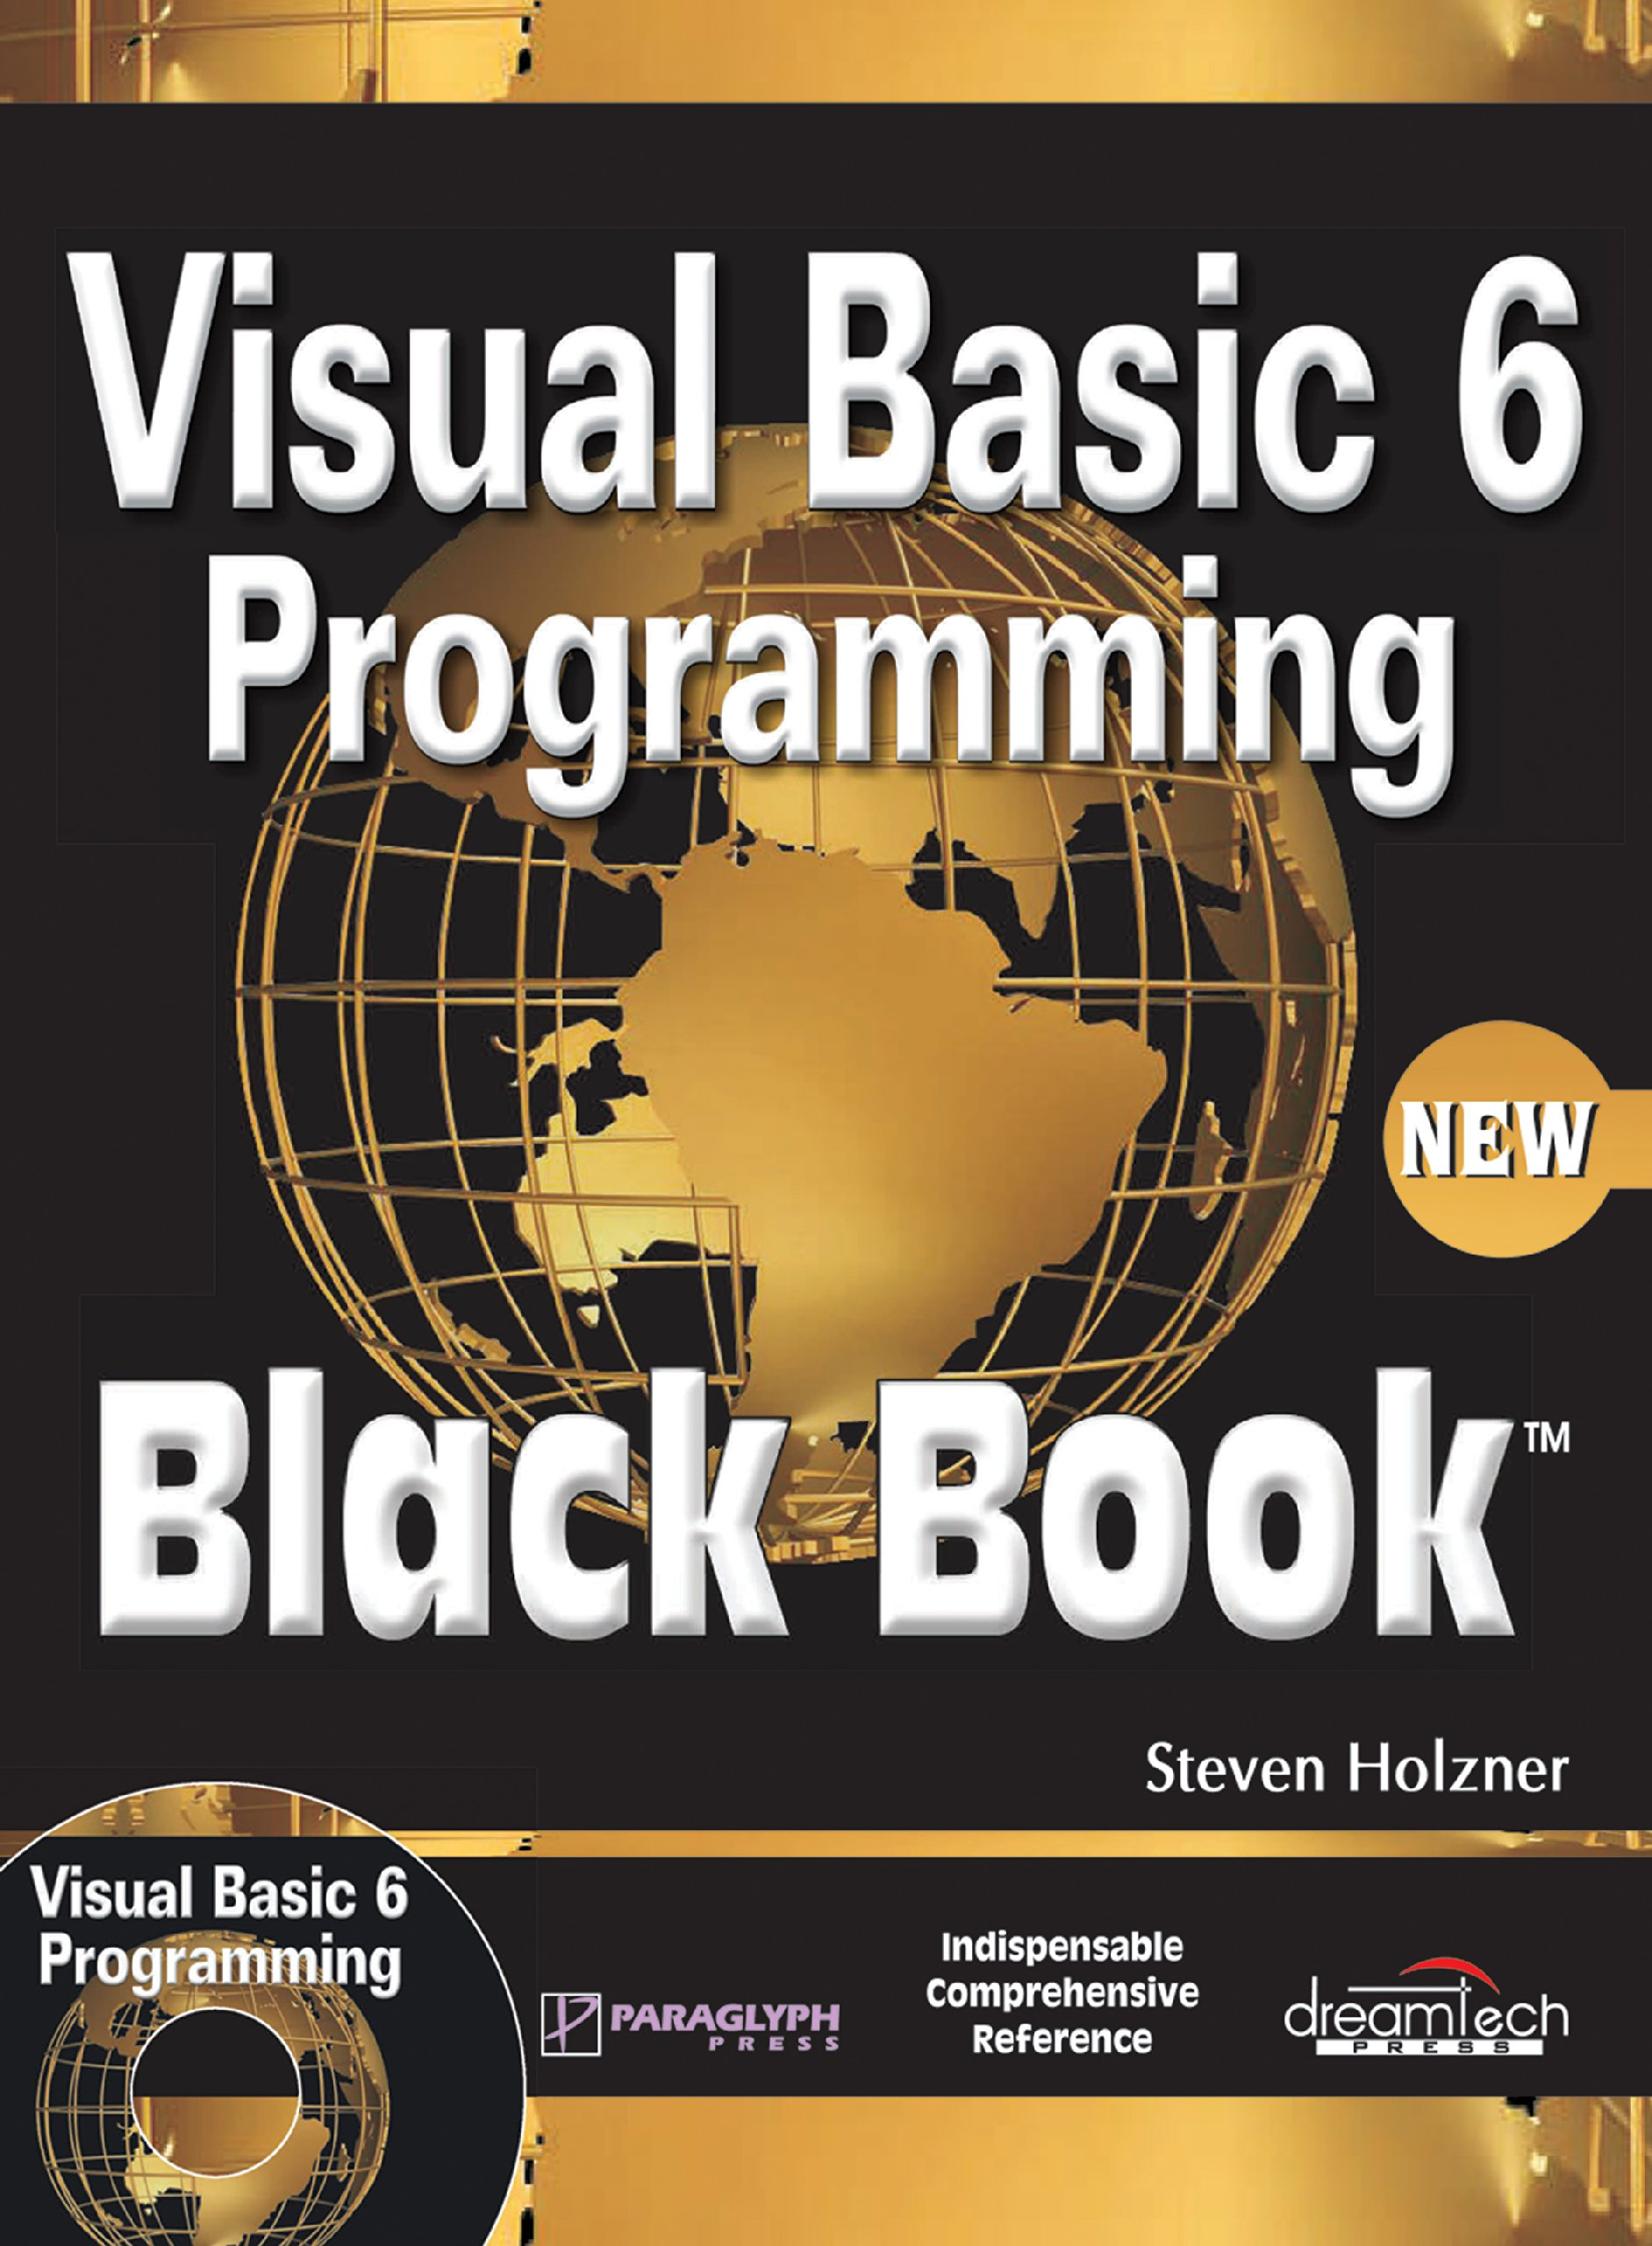 Visual Basic 6 Programming Black Book (Without Cd) Pdf ISBN